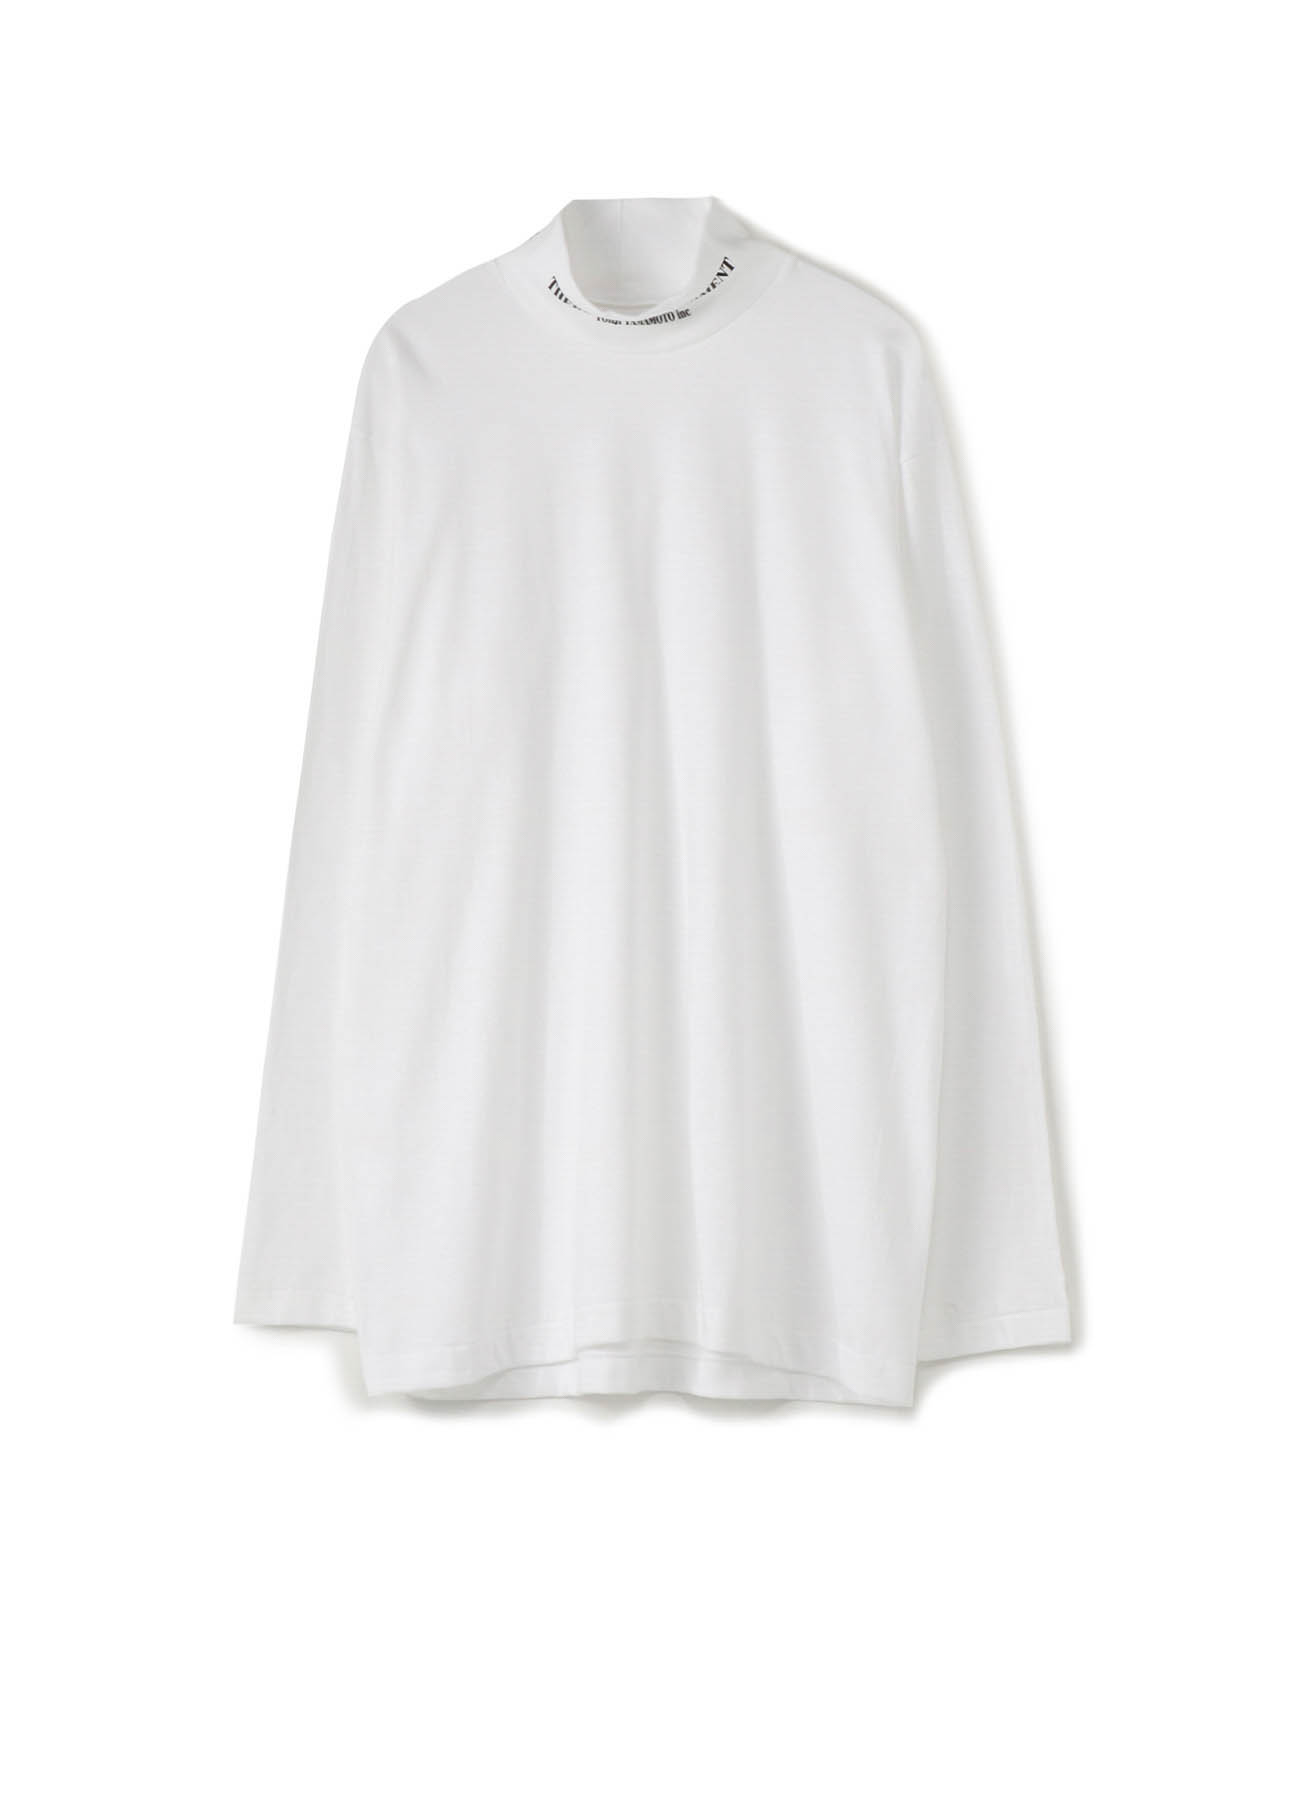 20/CottonJersey There's Only A Moment High Neck T-Shirt